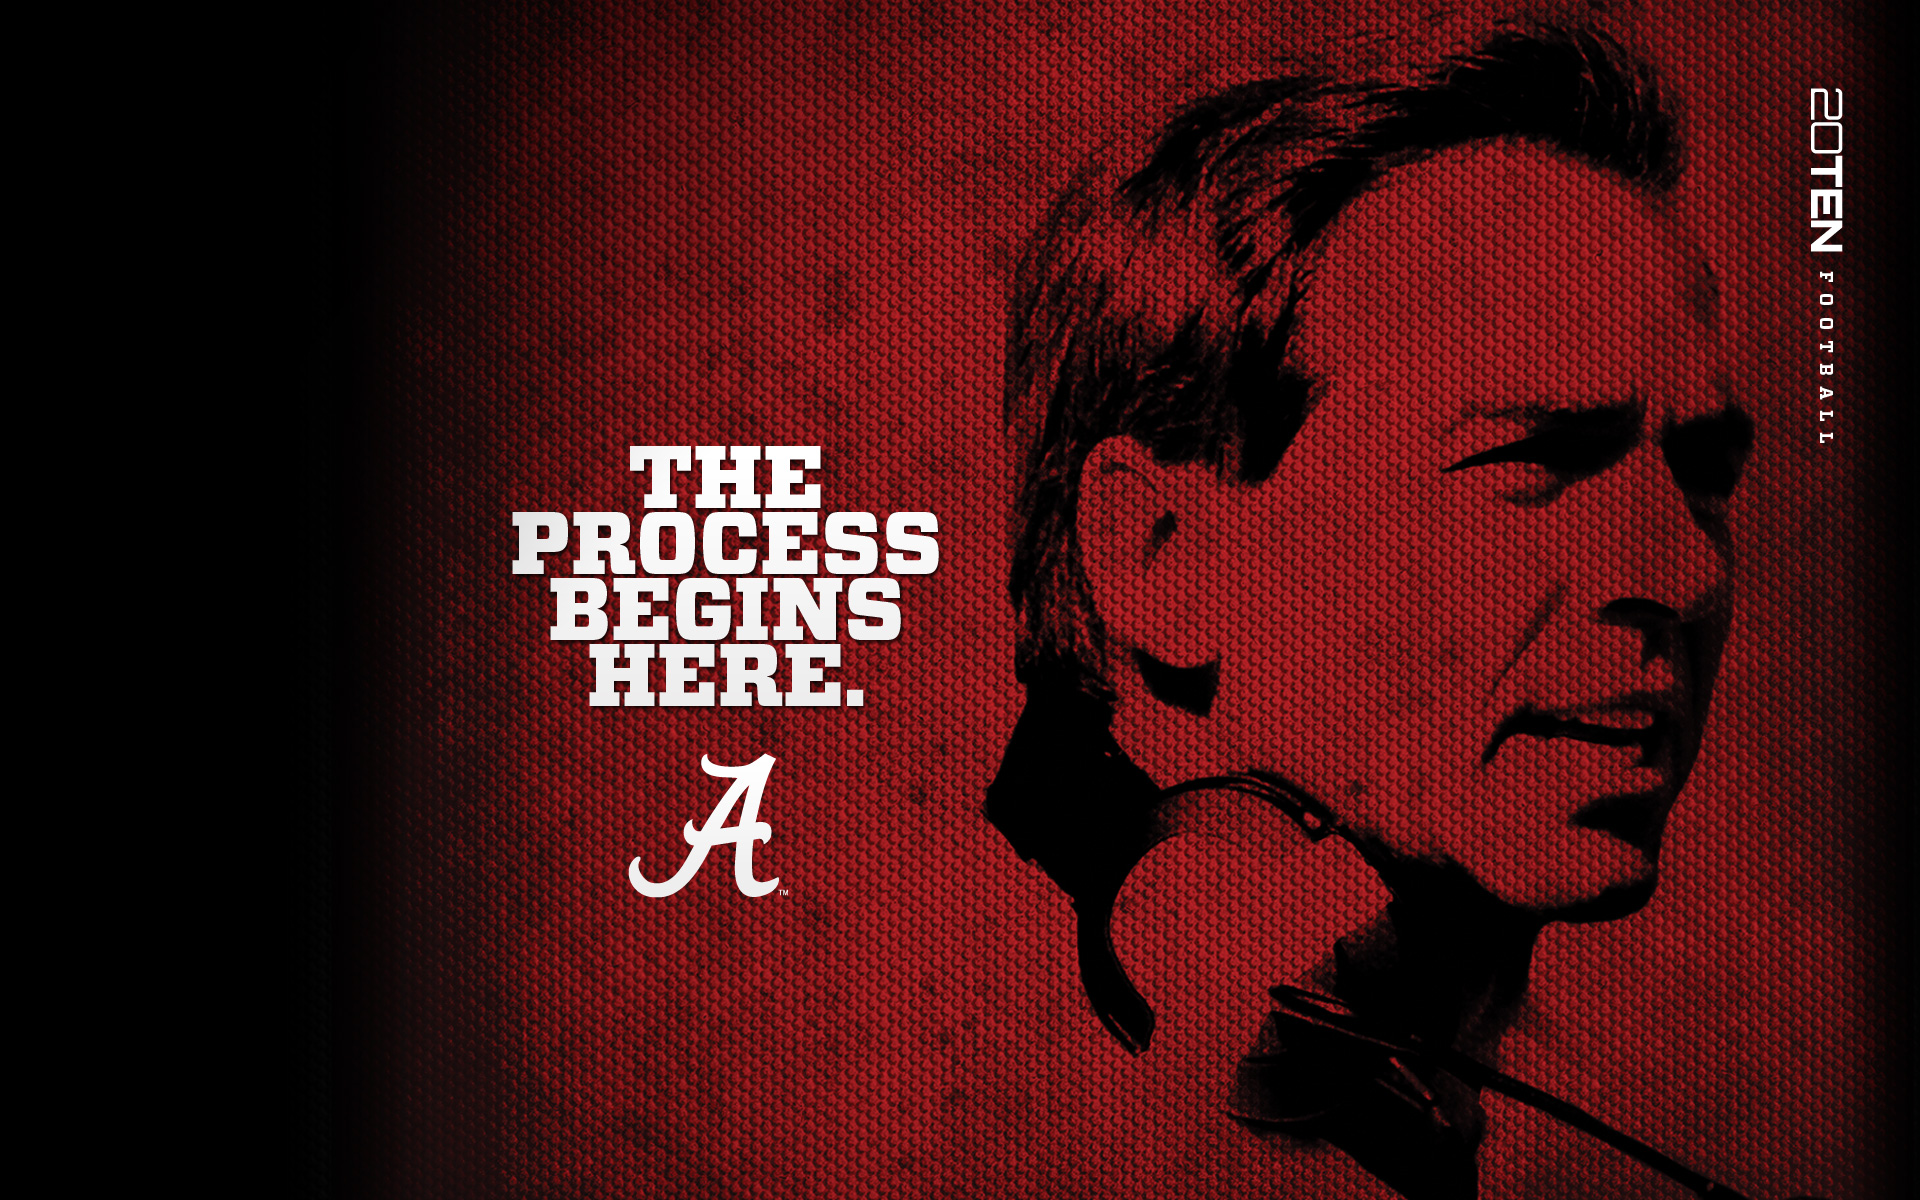 10+ images about Go Bama Roll Tide on Pinterest | Alabama, Logos